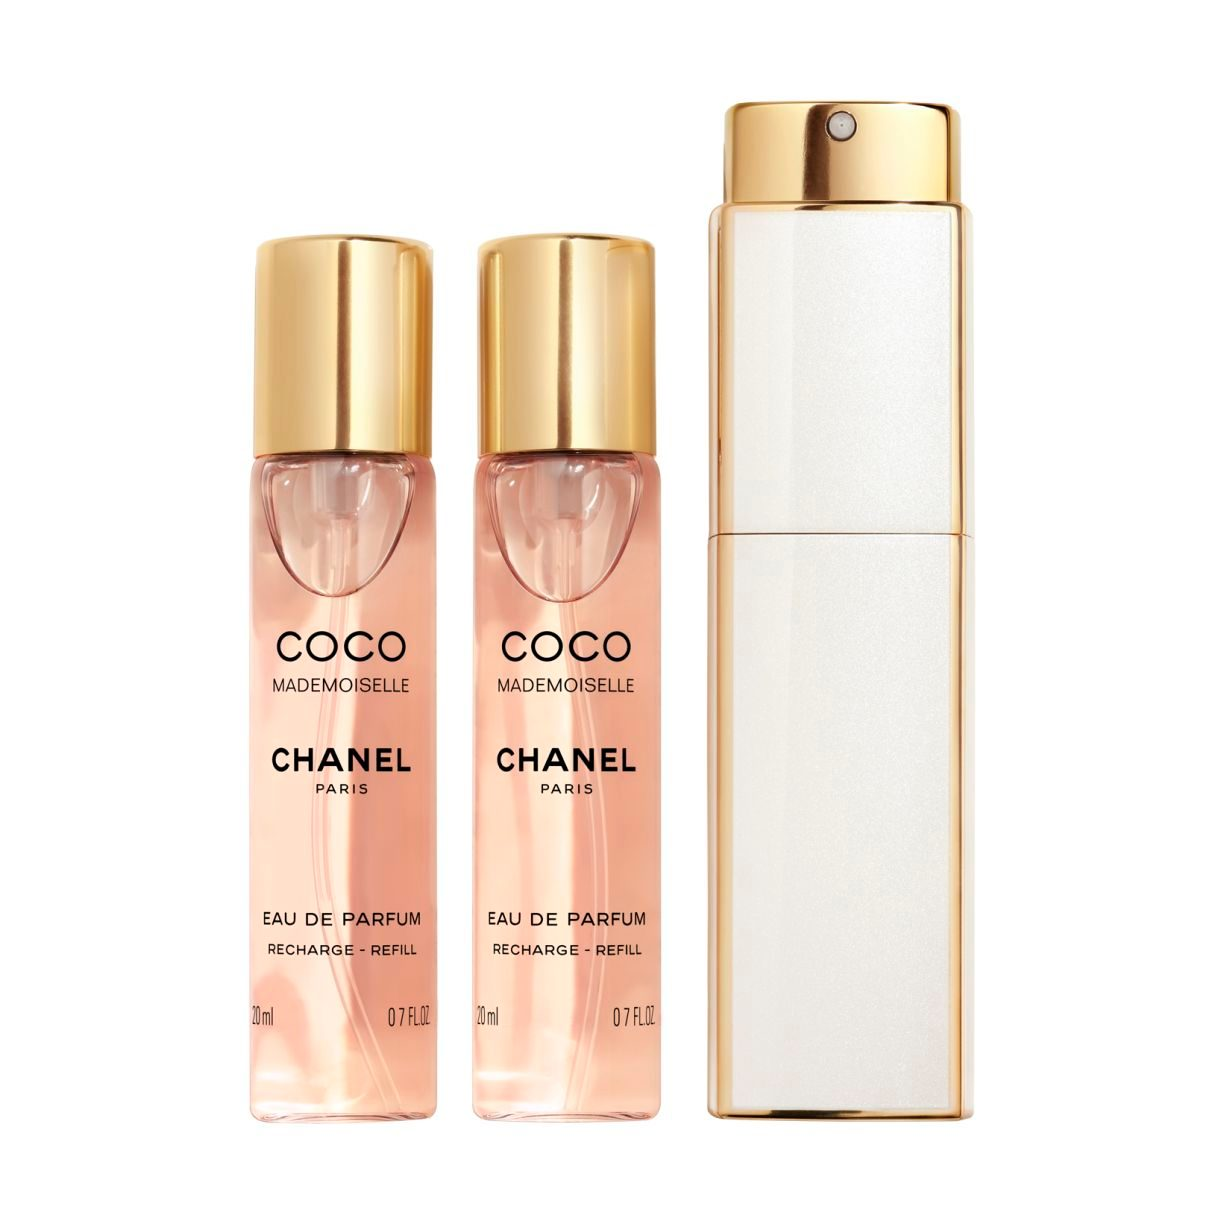 COCO MADEMOISELLE WODA PERFUMOWANA TWIST AND SPRAY 3 x 20ml